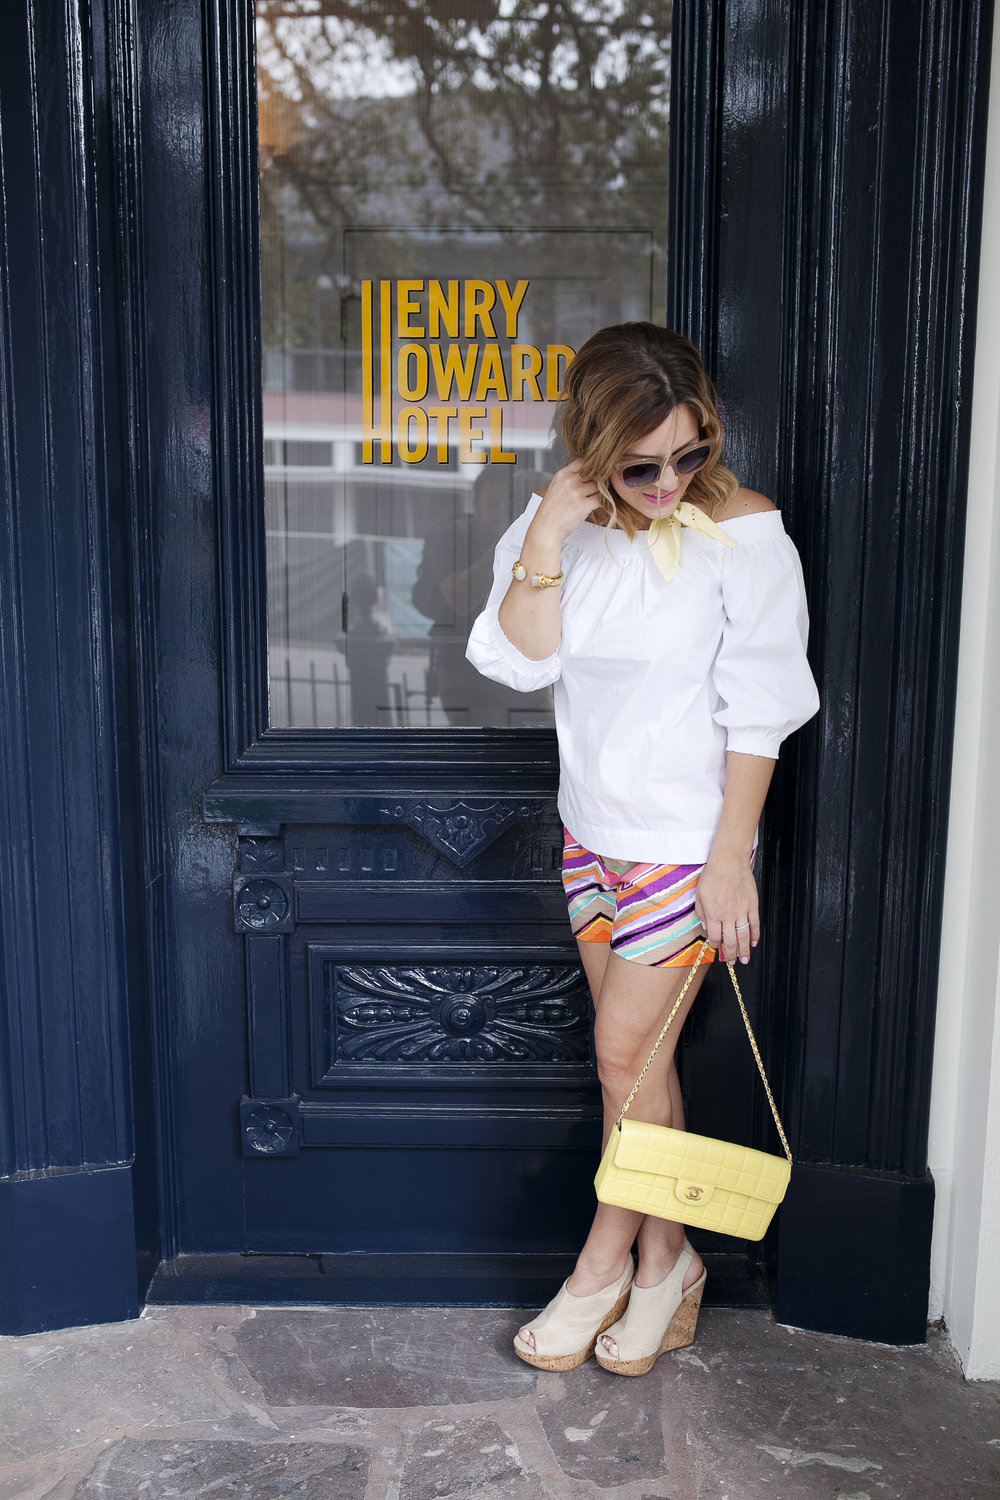 Trina Turk Set with off the shoulder white top and colored shorts. Vintage yellow Chanel bag at Henry Howard Hotel 2.jpg